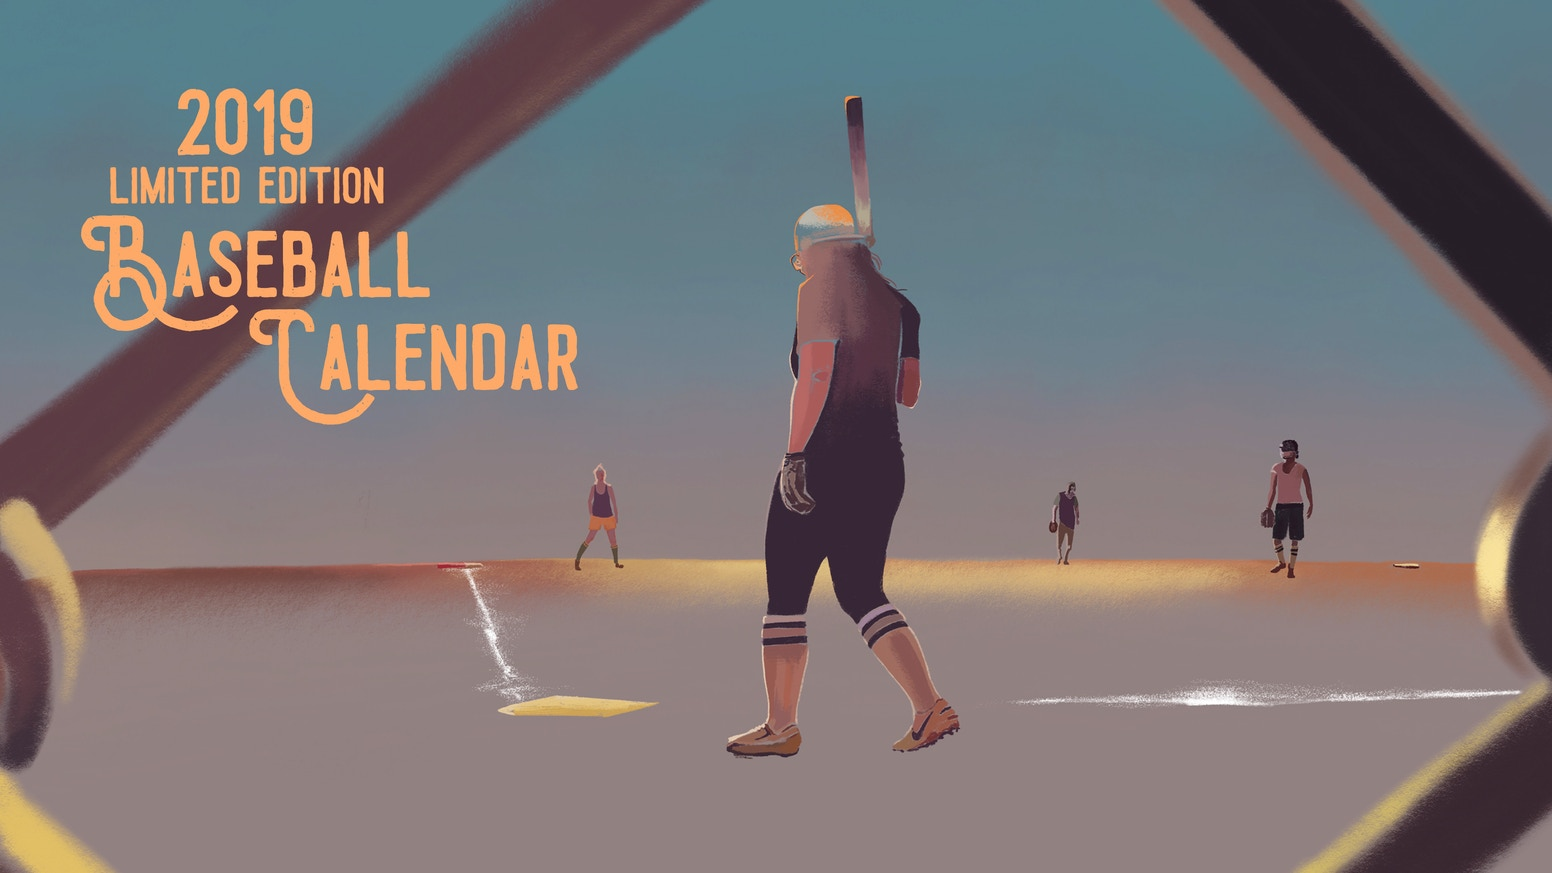 This winter, get your gloves on a vibrant and colourful limited edition 2019 baseball calendar!